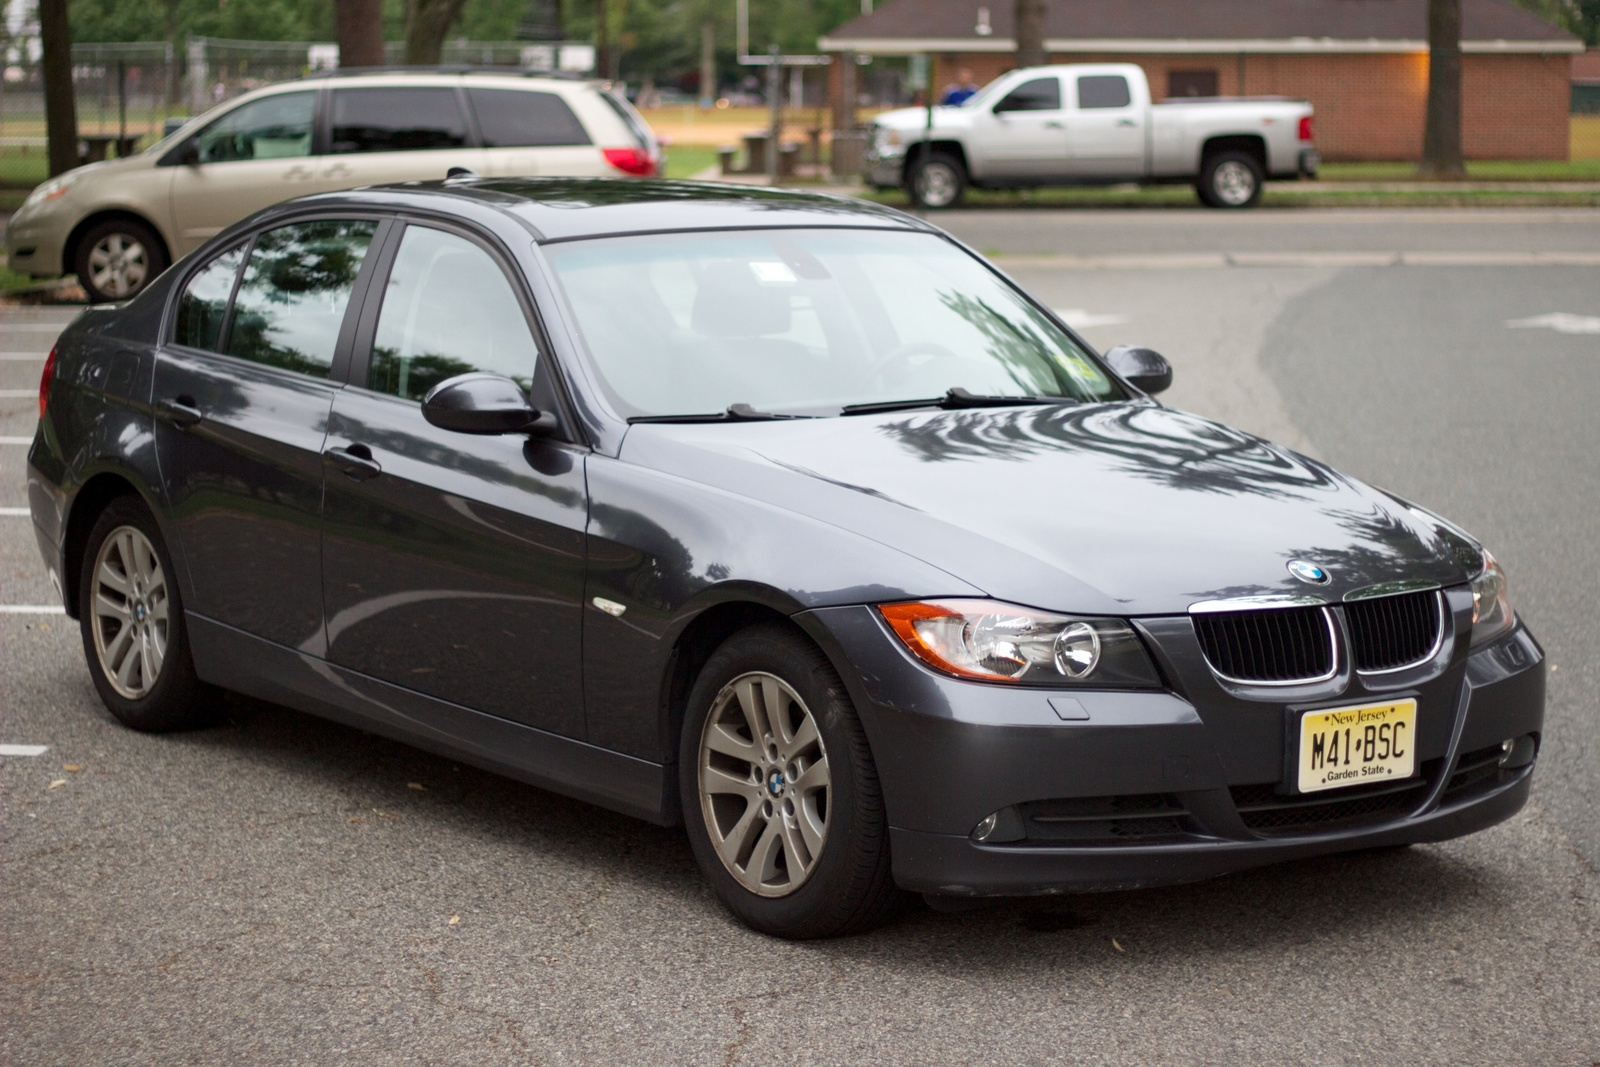 BMW 3 series 325xi 2009 photo - 3